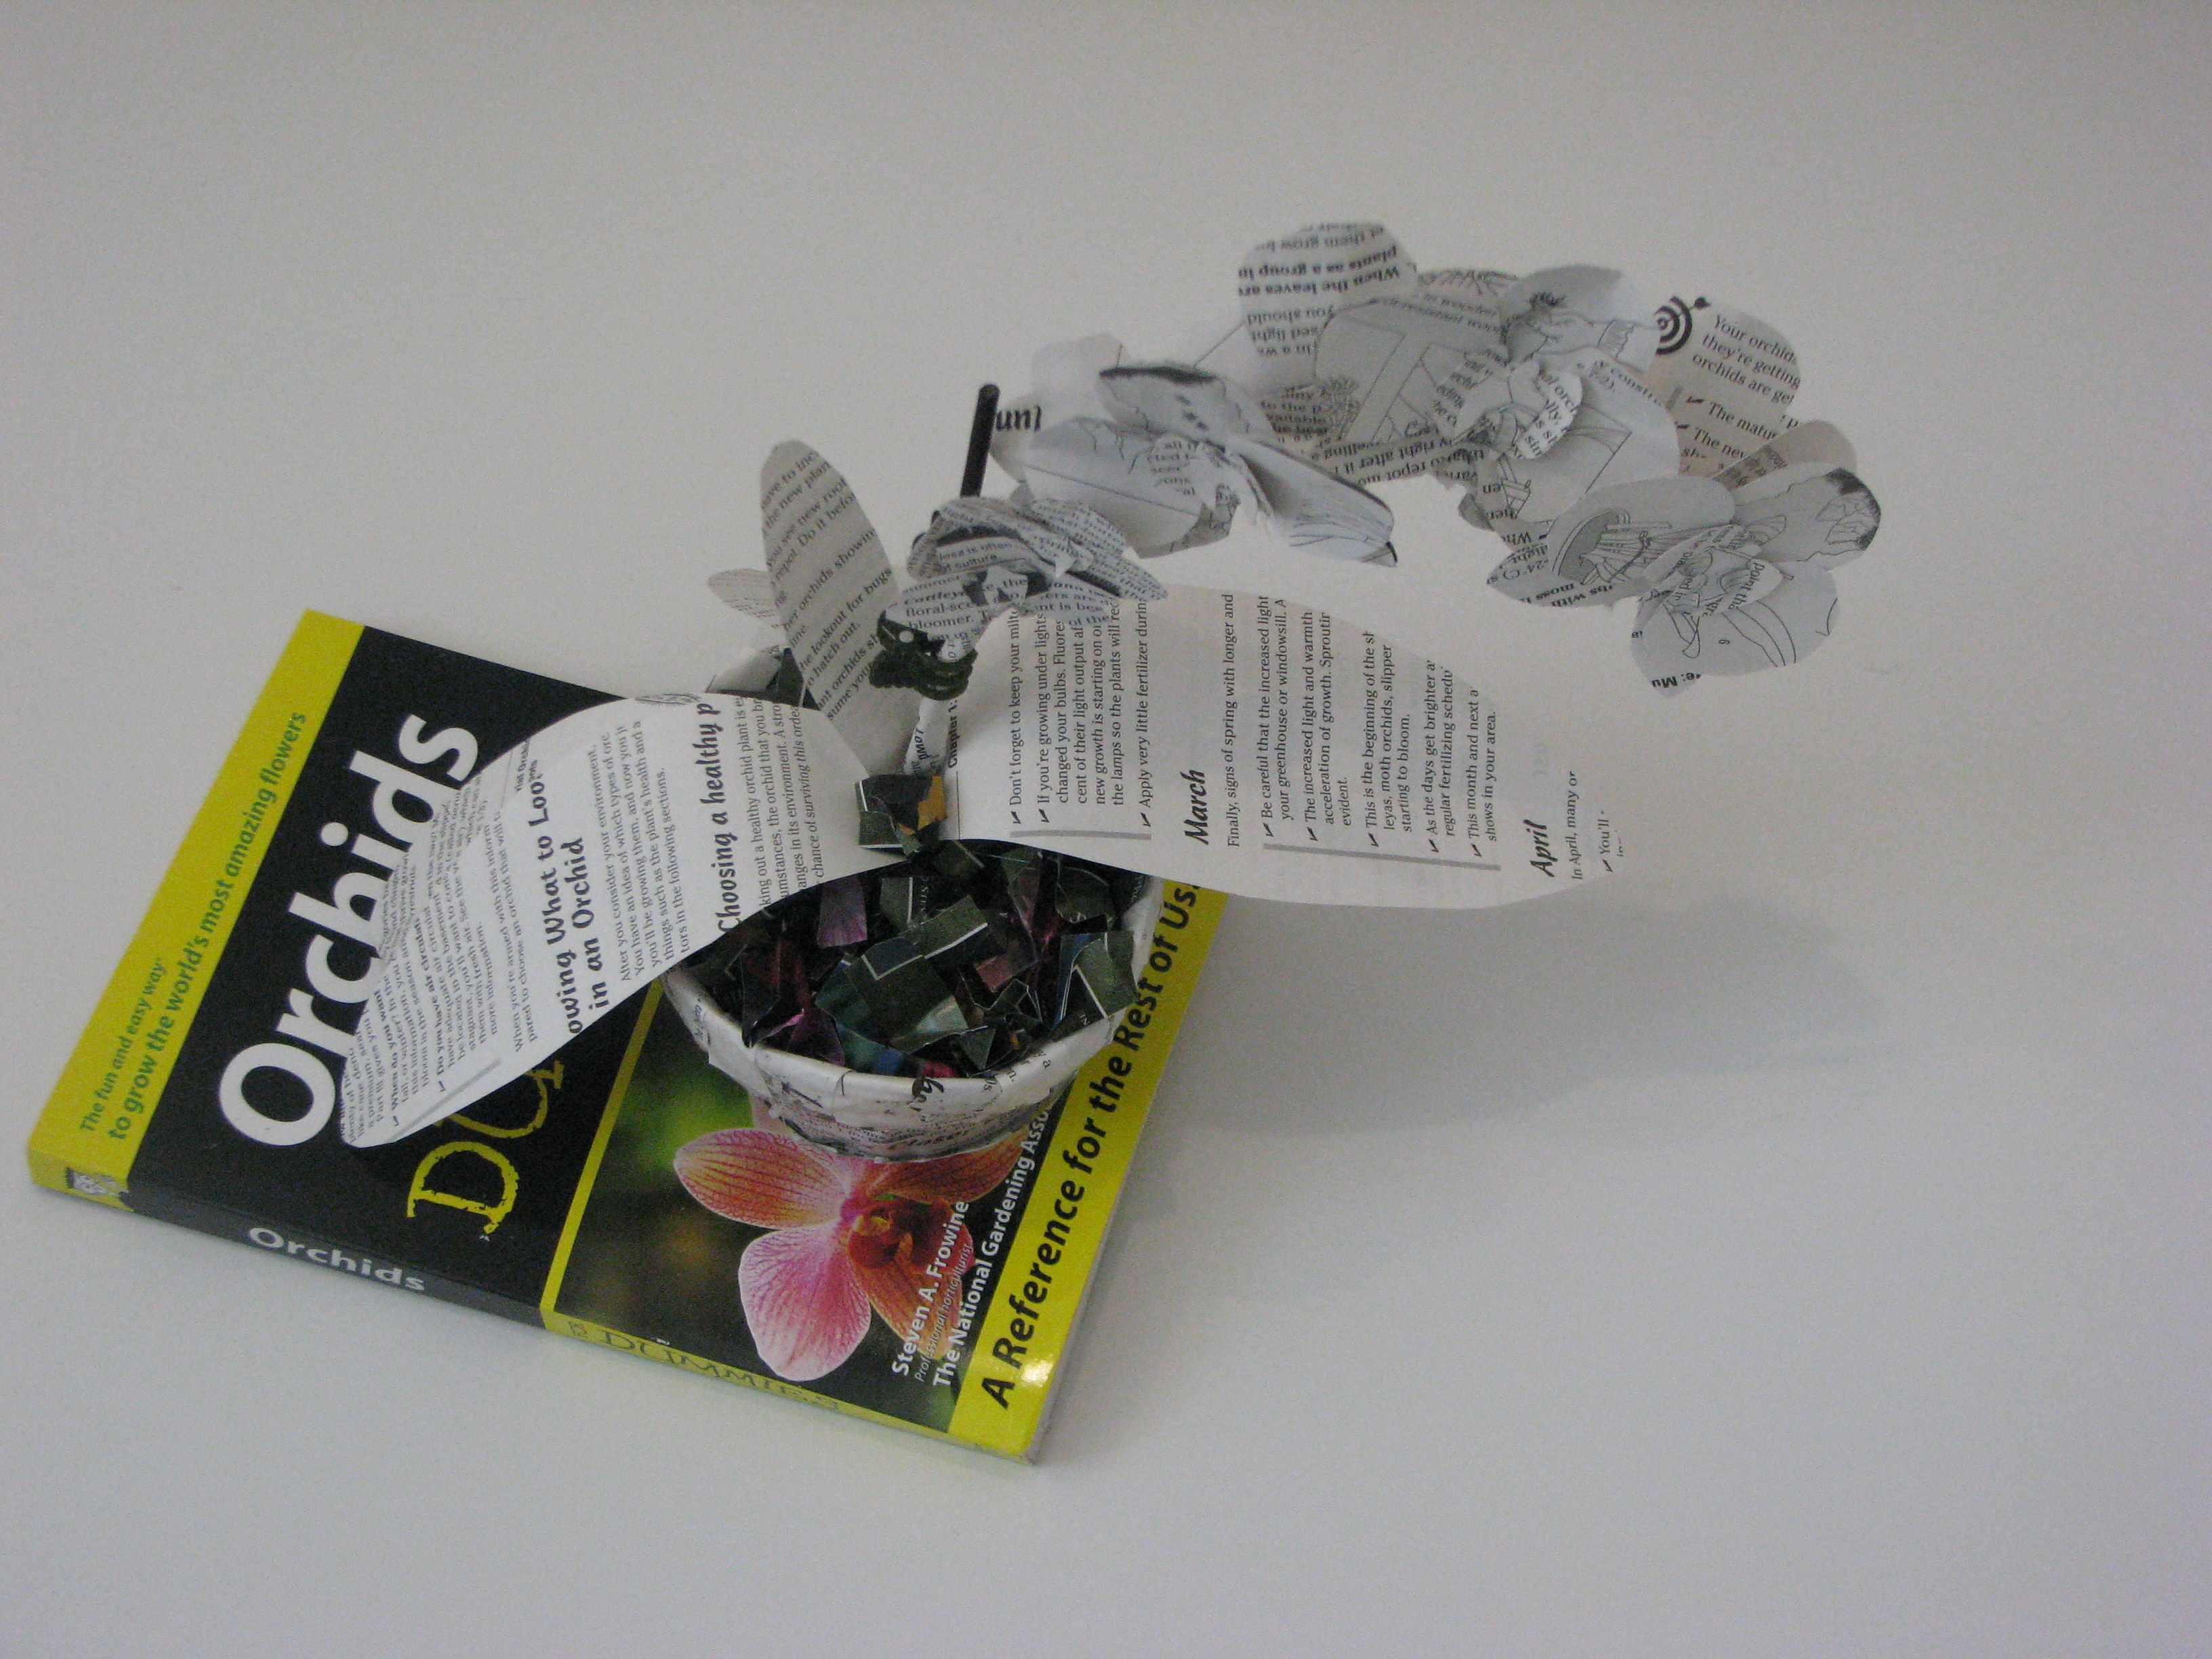 Orchid plant made of book pages sitting in a book page planter that is coming out of the Orchids for Dummies book